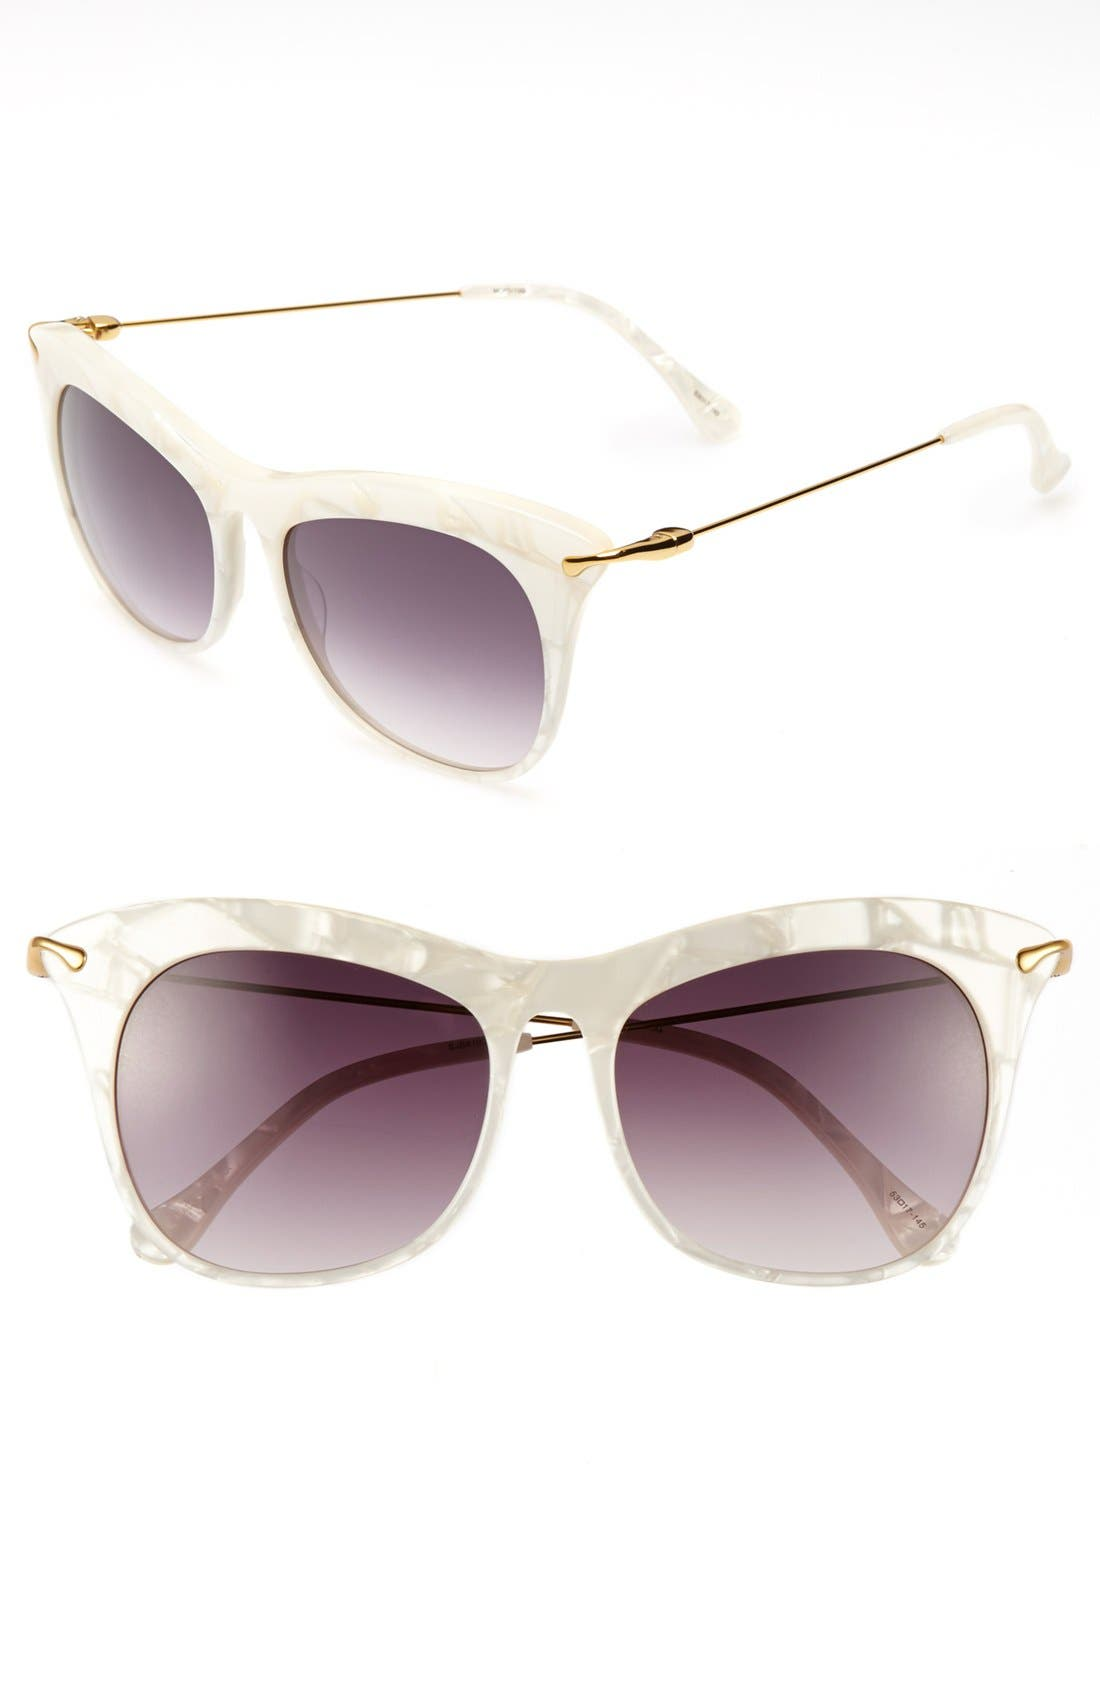 Main Image - Elizabeth and James 'Fairfax' 53mm Sunglasses